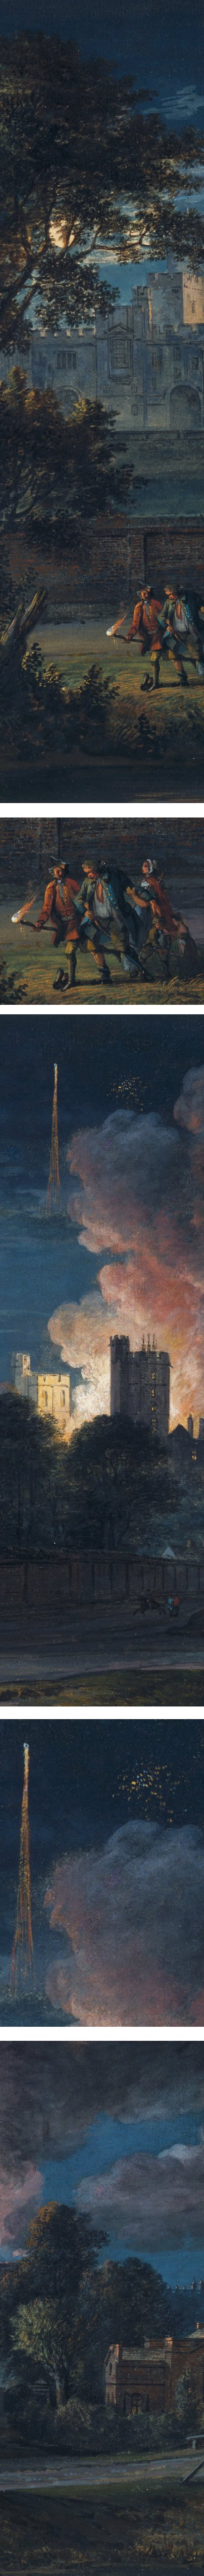 Windsor Castle from Drachet Lane on a rejoicing night, gouache on paper by Paul Sandby (details)